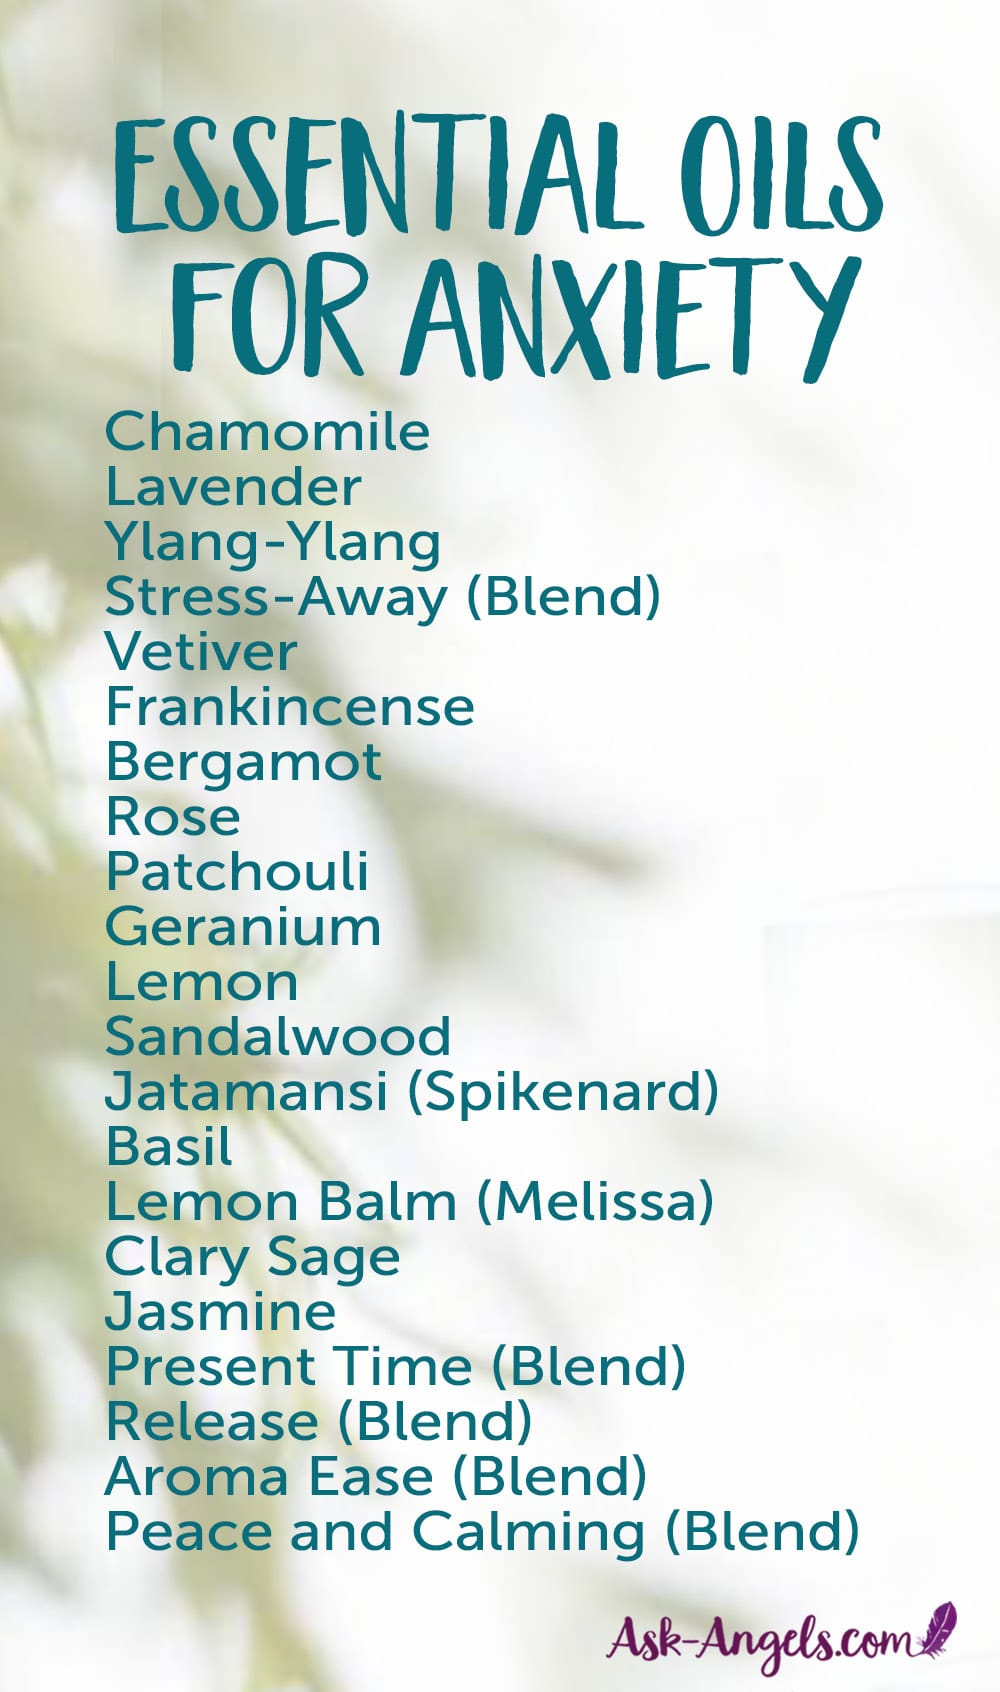 21 Essential Oils for Anxiety